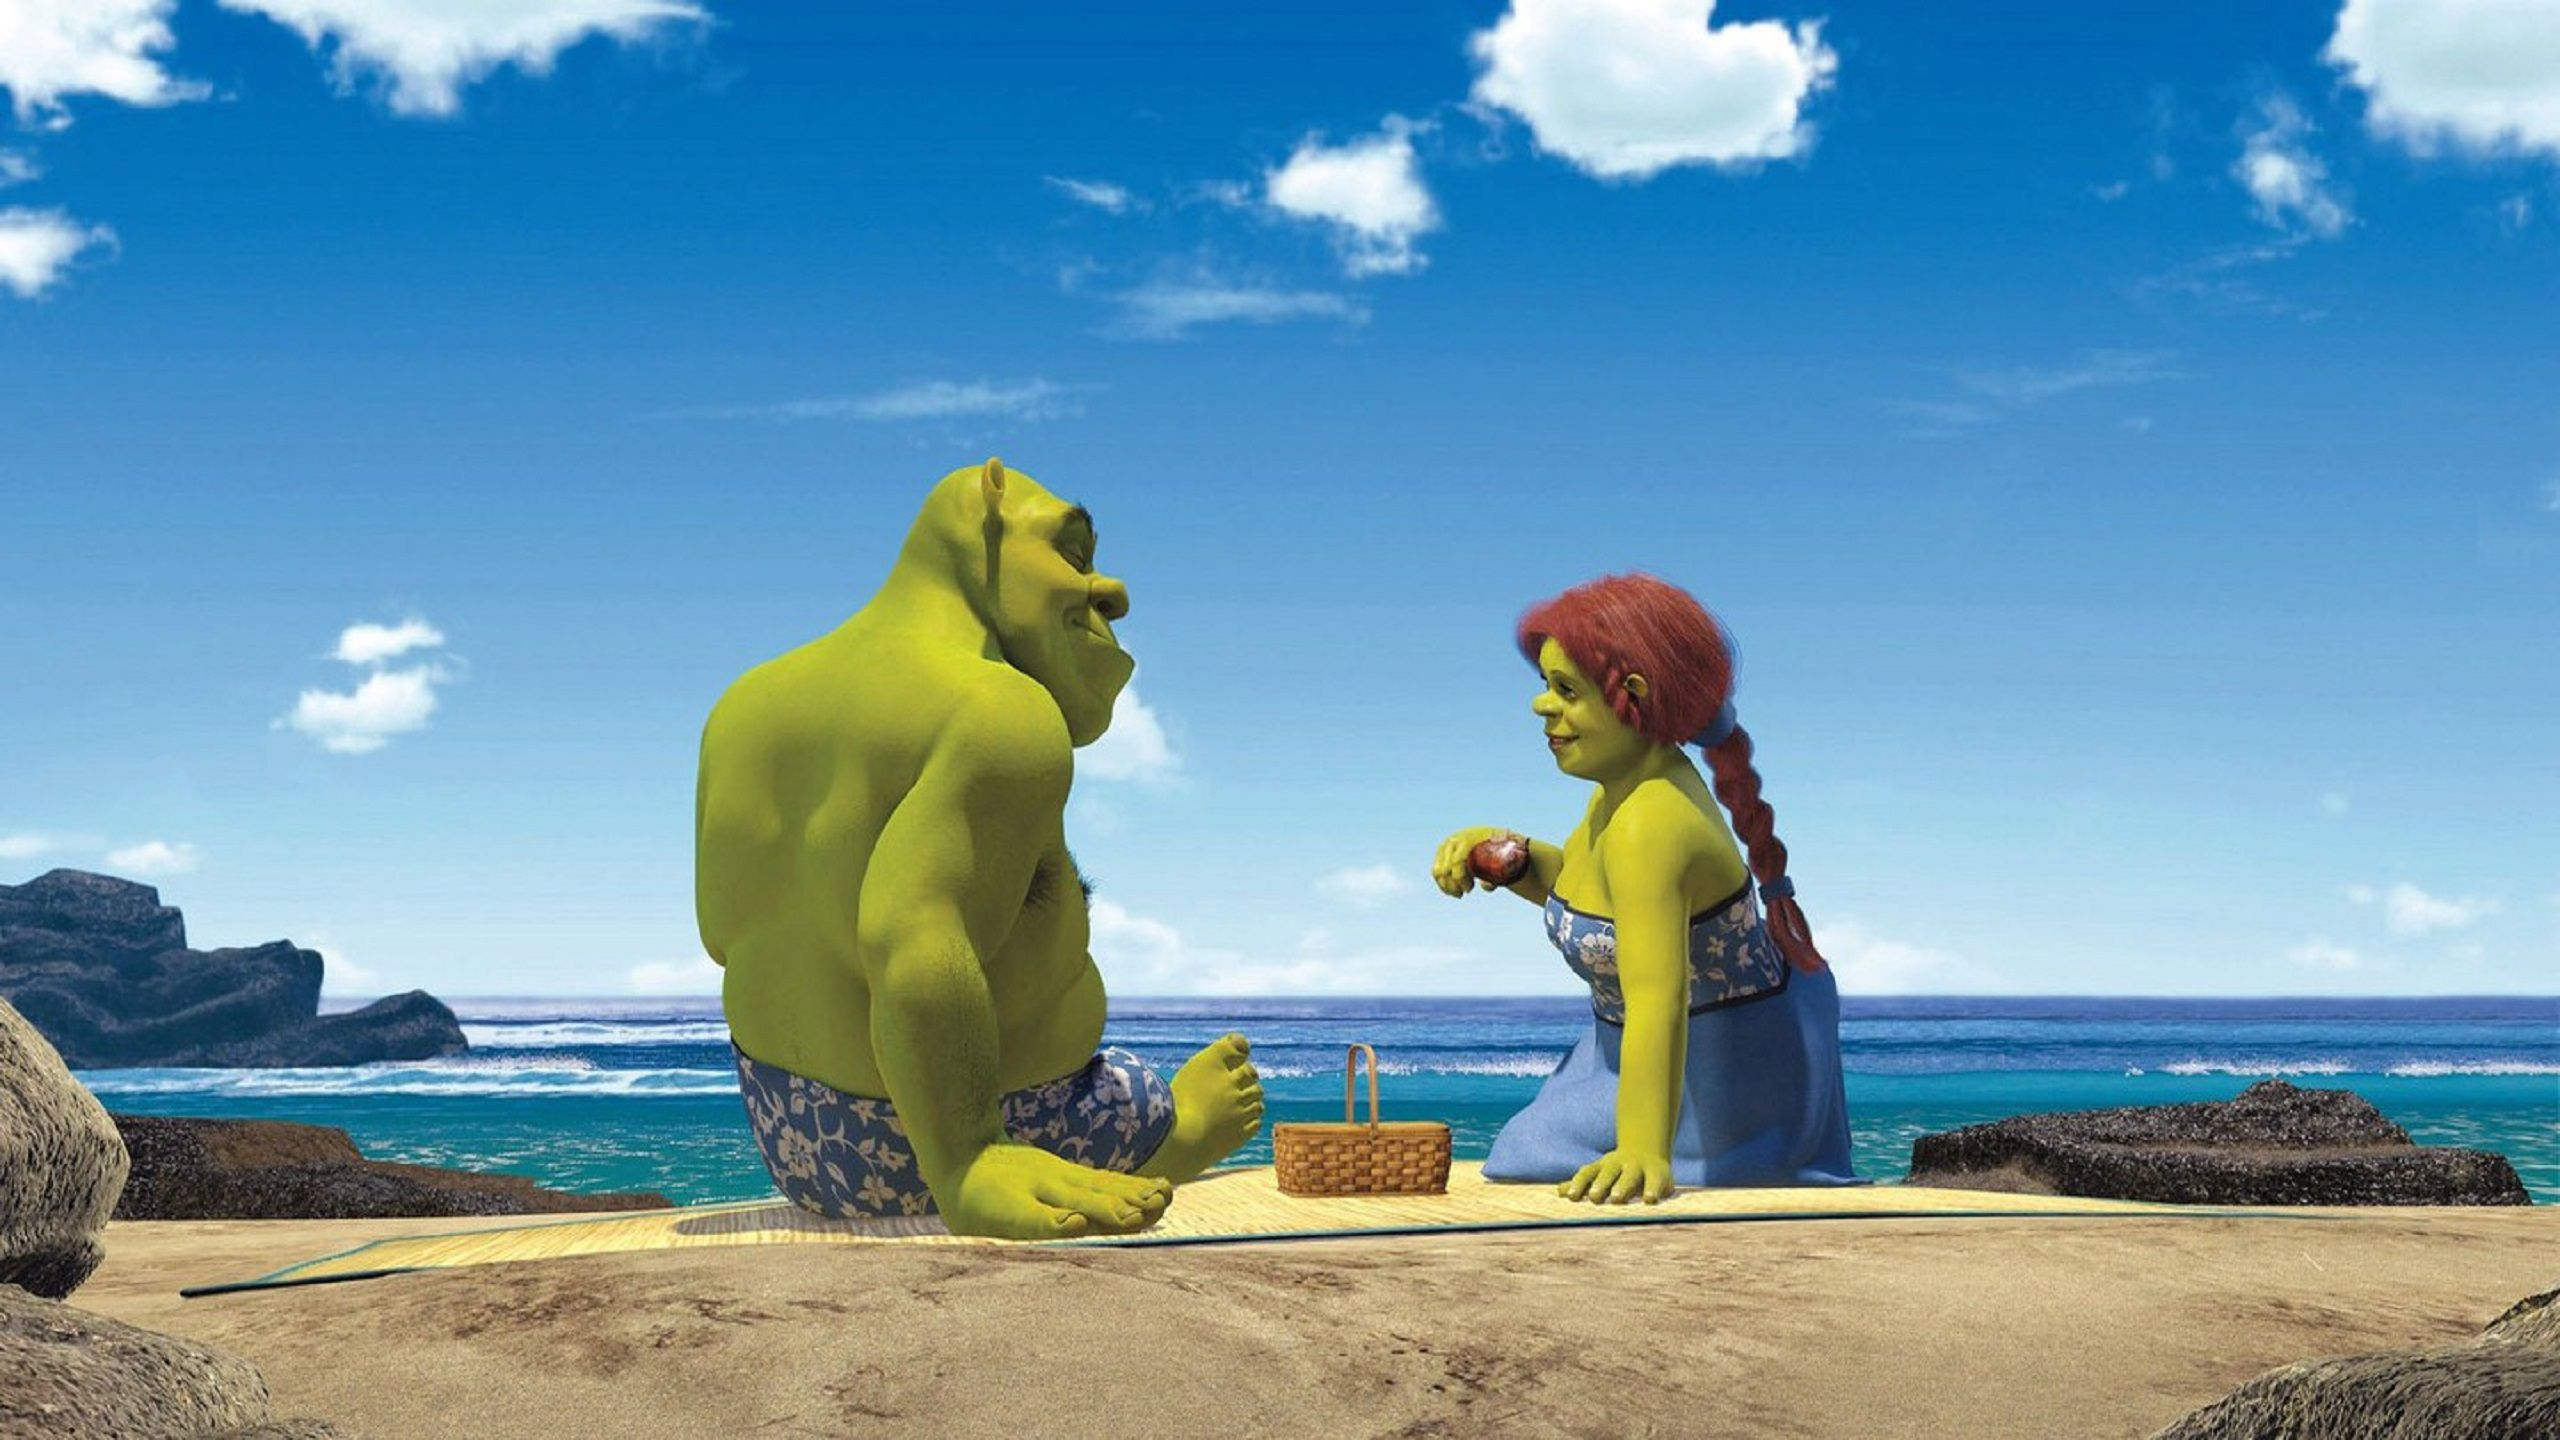 Shrek 2 beach relax